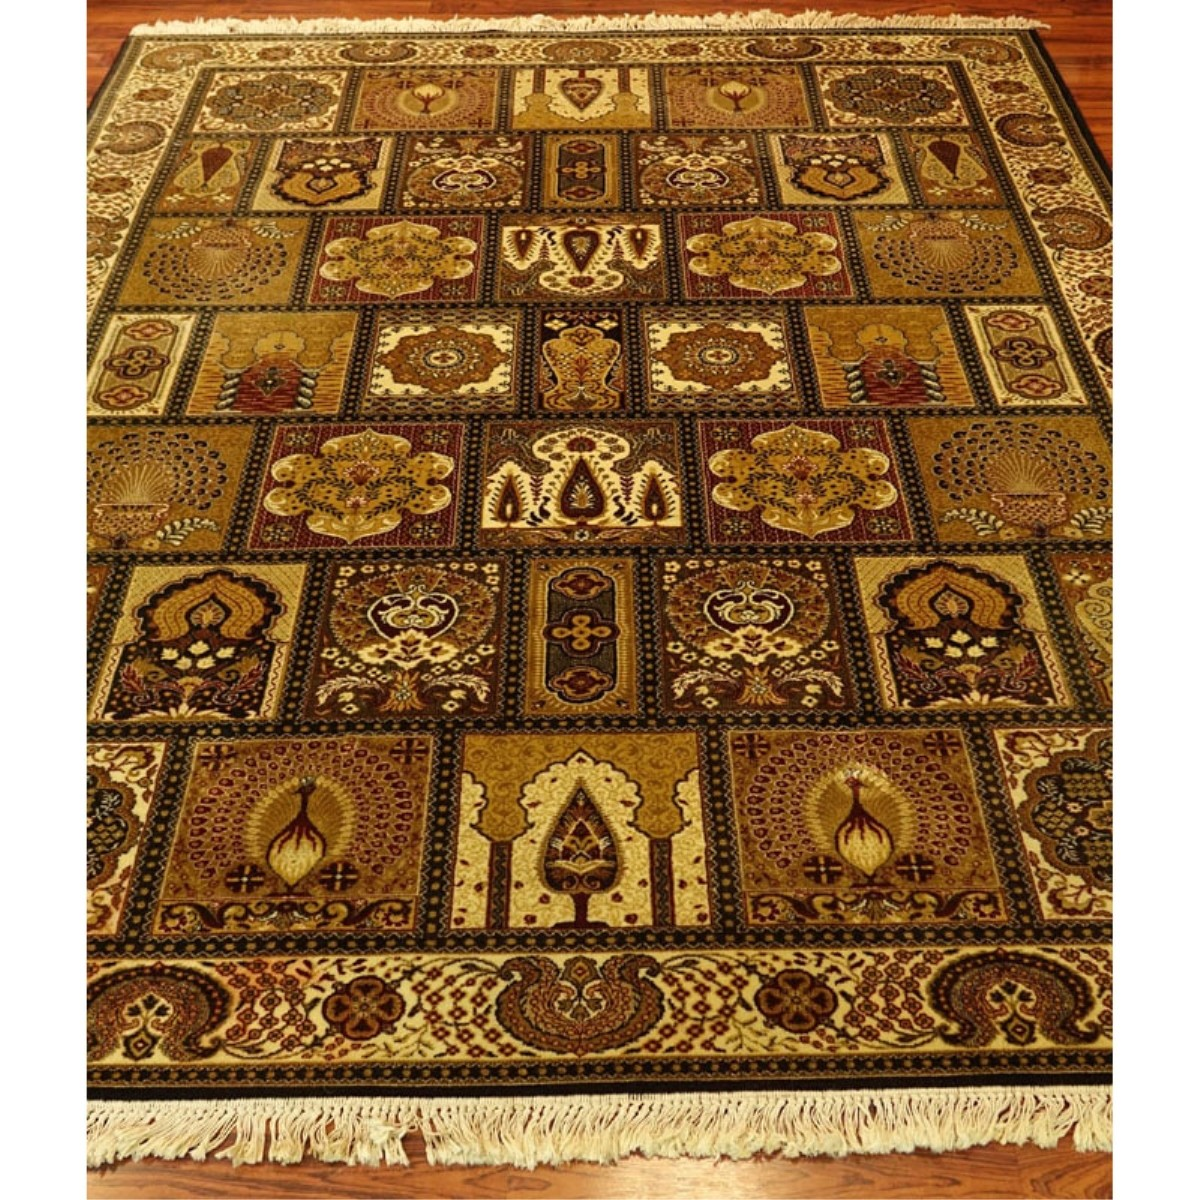 Lot 258 - Persian Style Rug